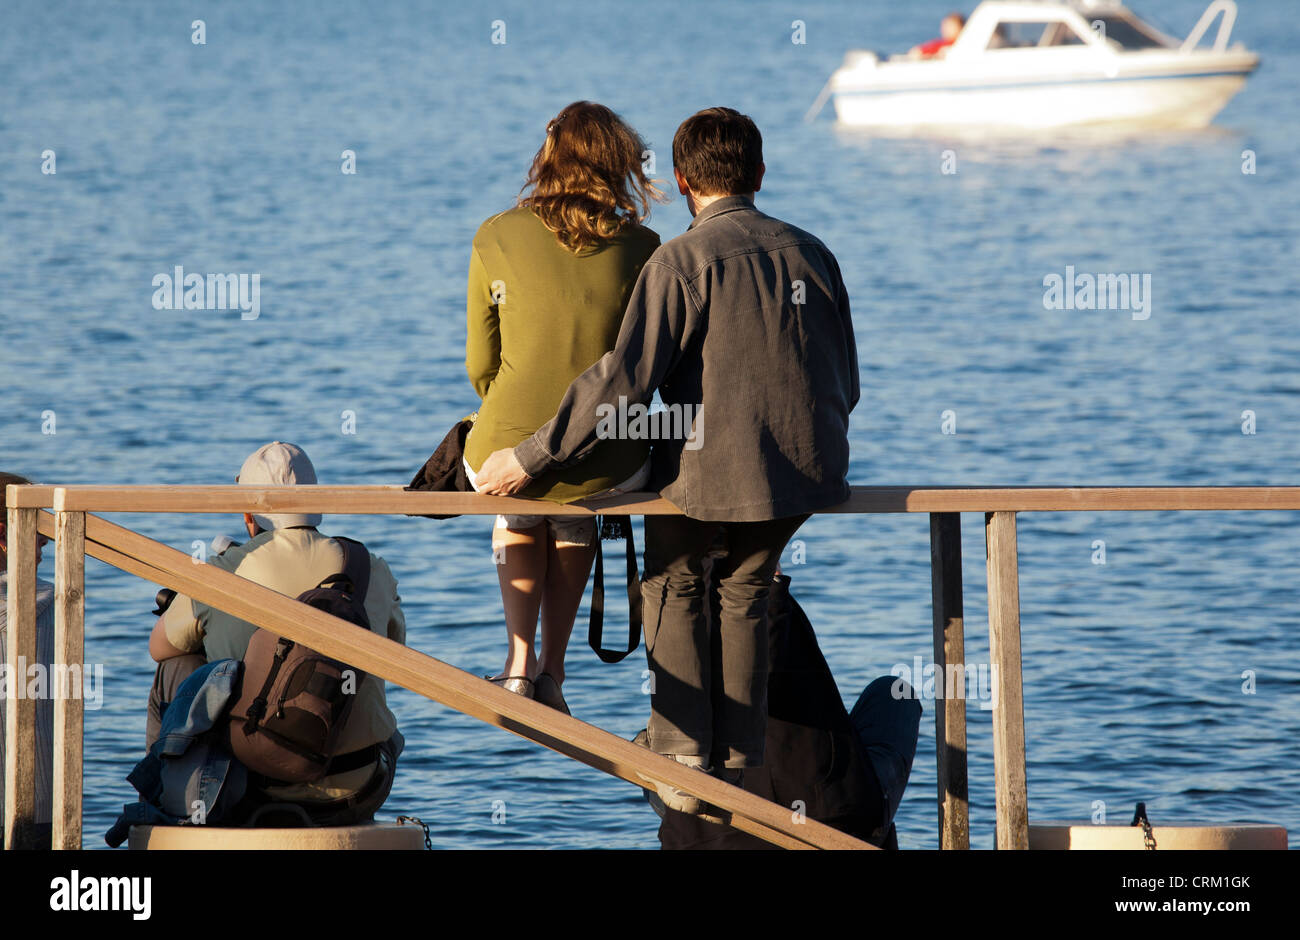 Man and woman sitting on handrail at harbour, Finland - Stock Image